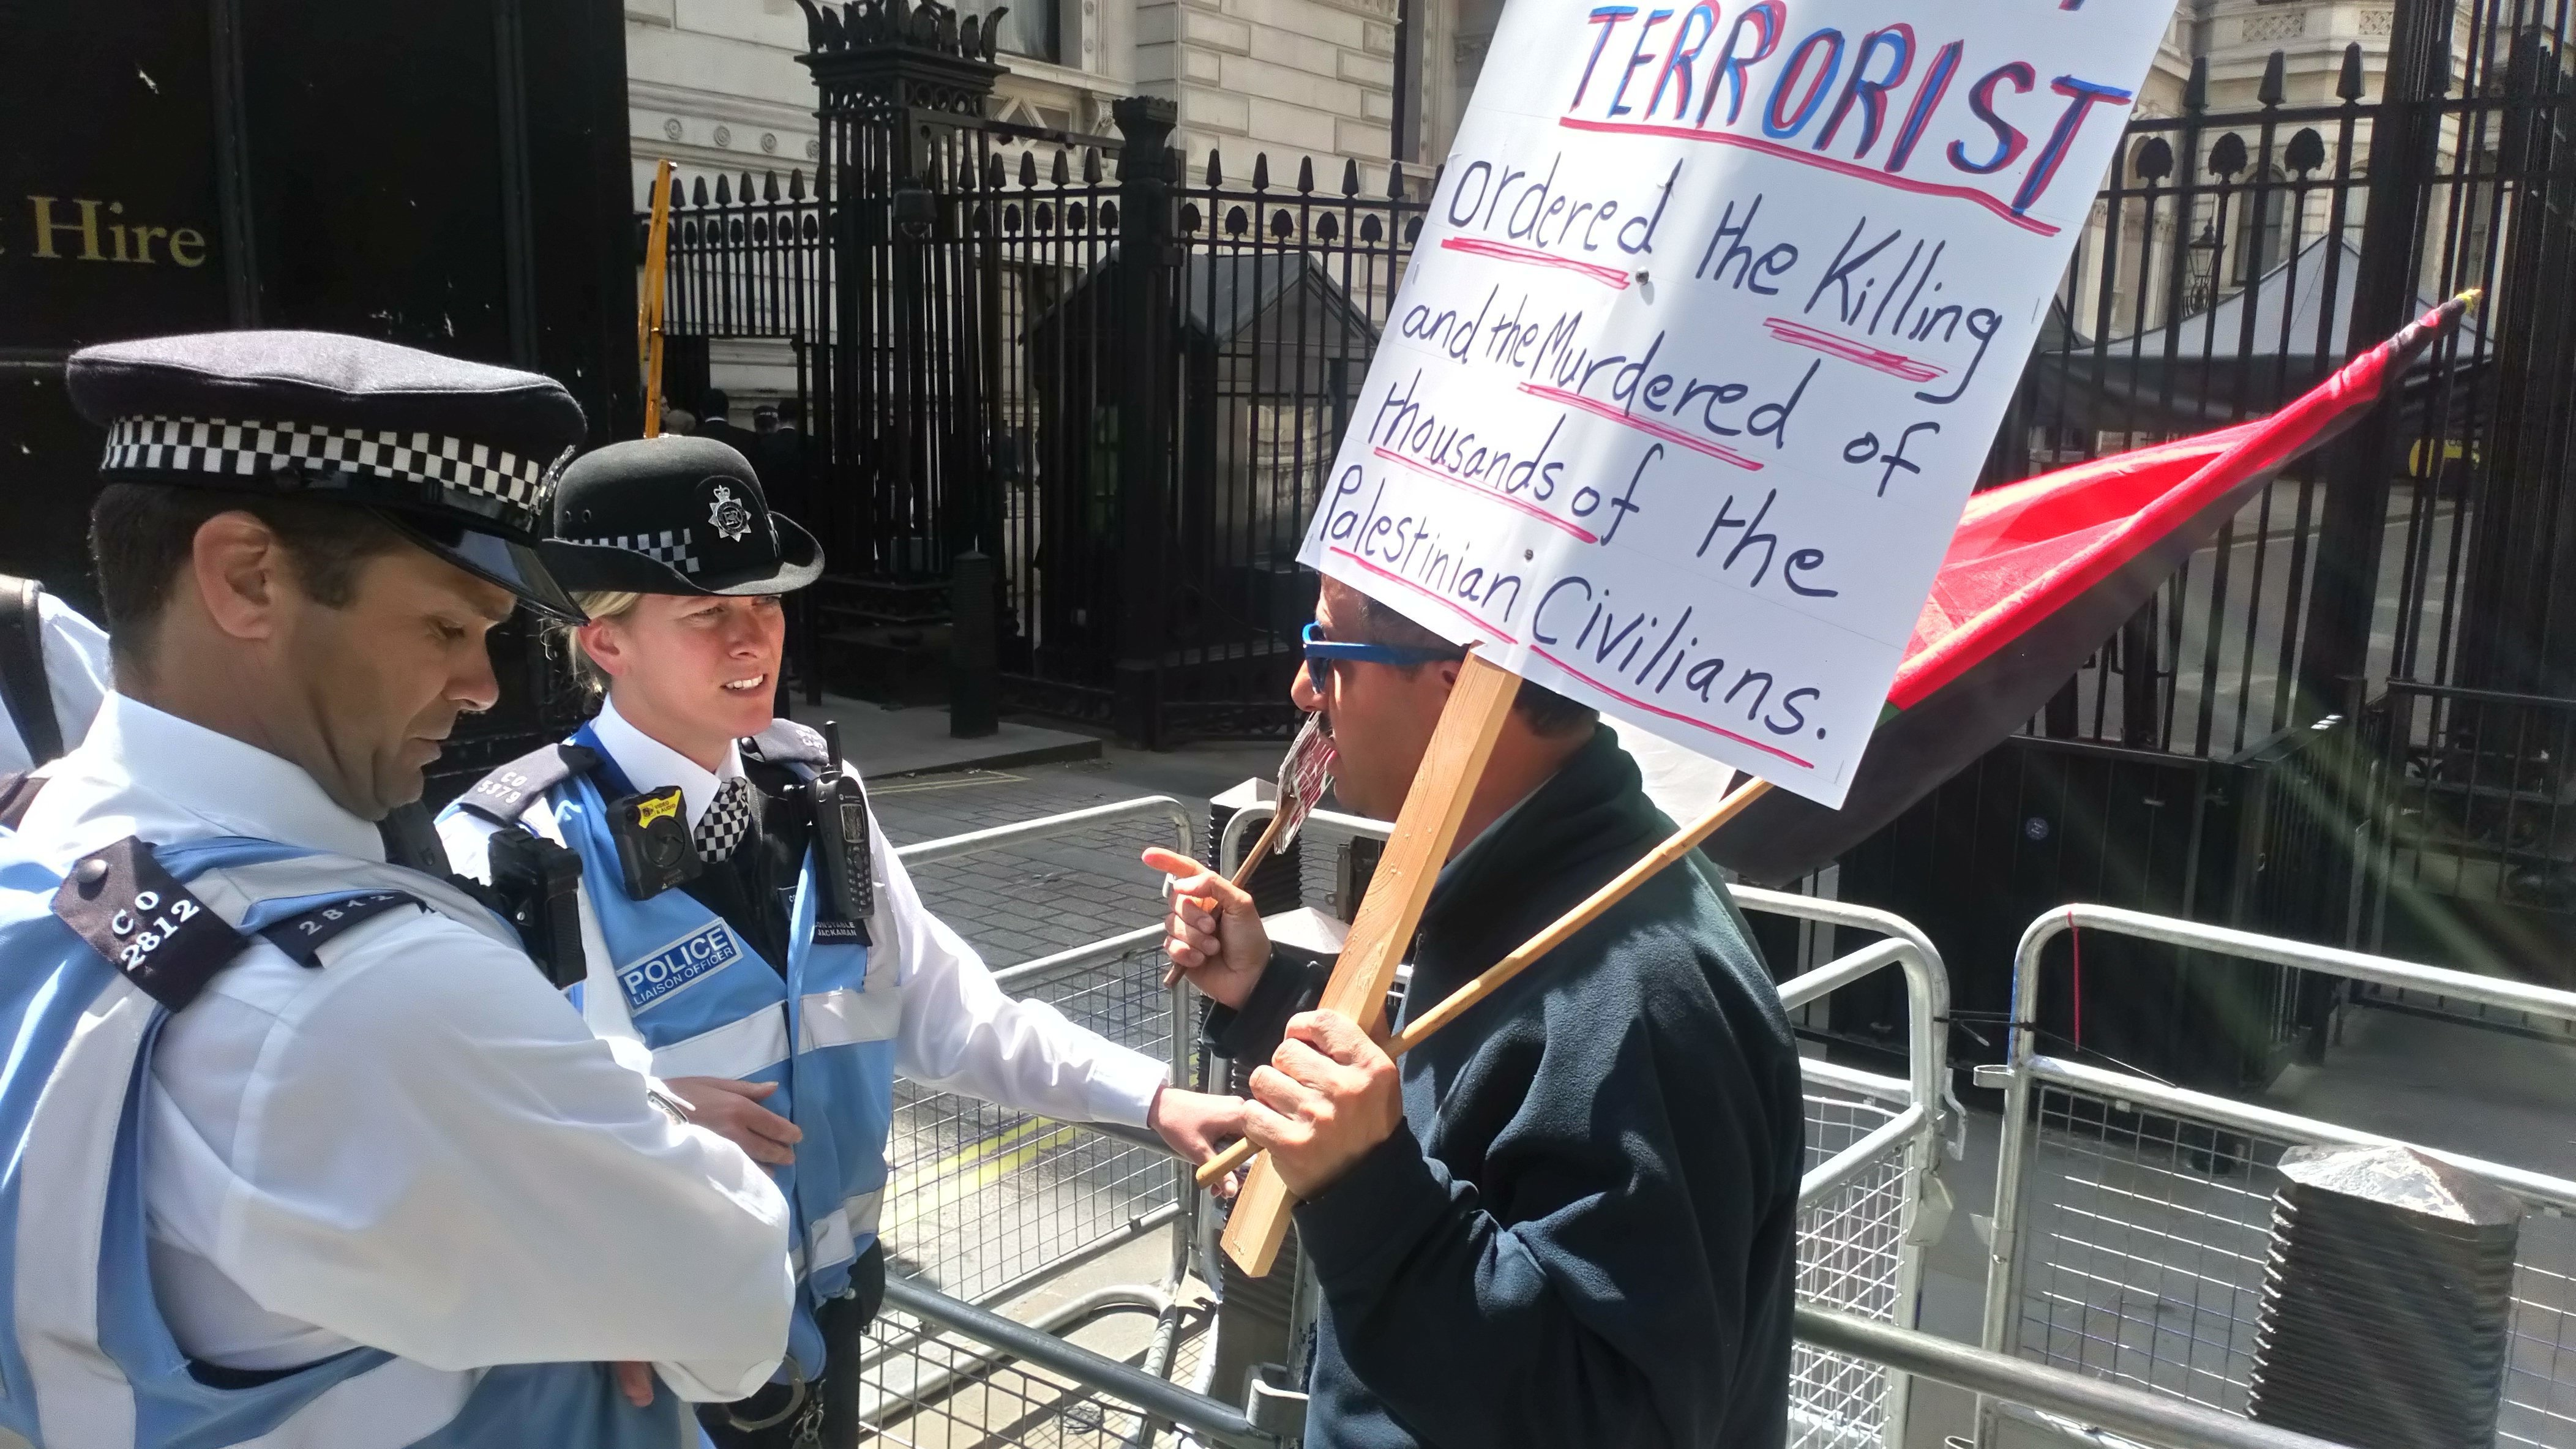 A protester demonstrates with police outside Downing Street